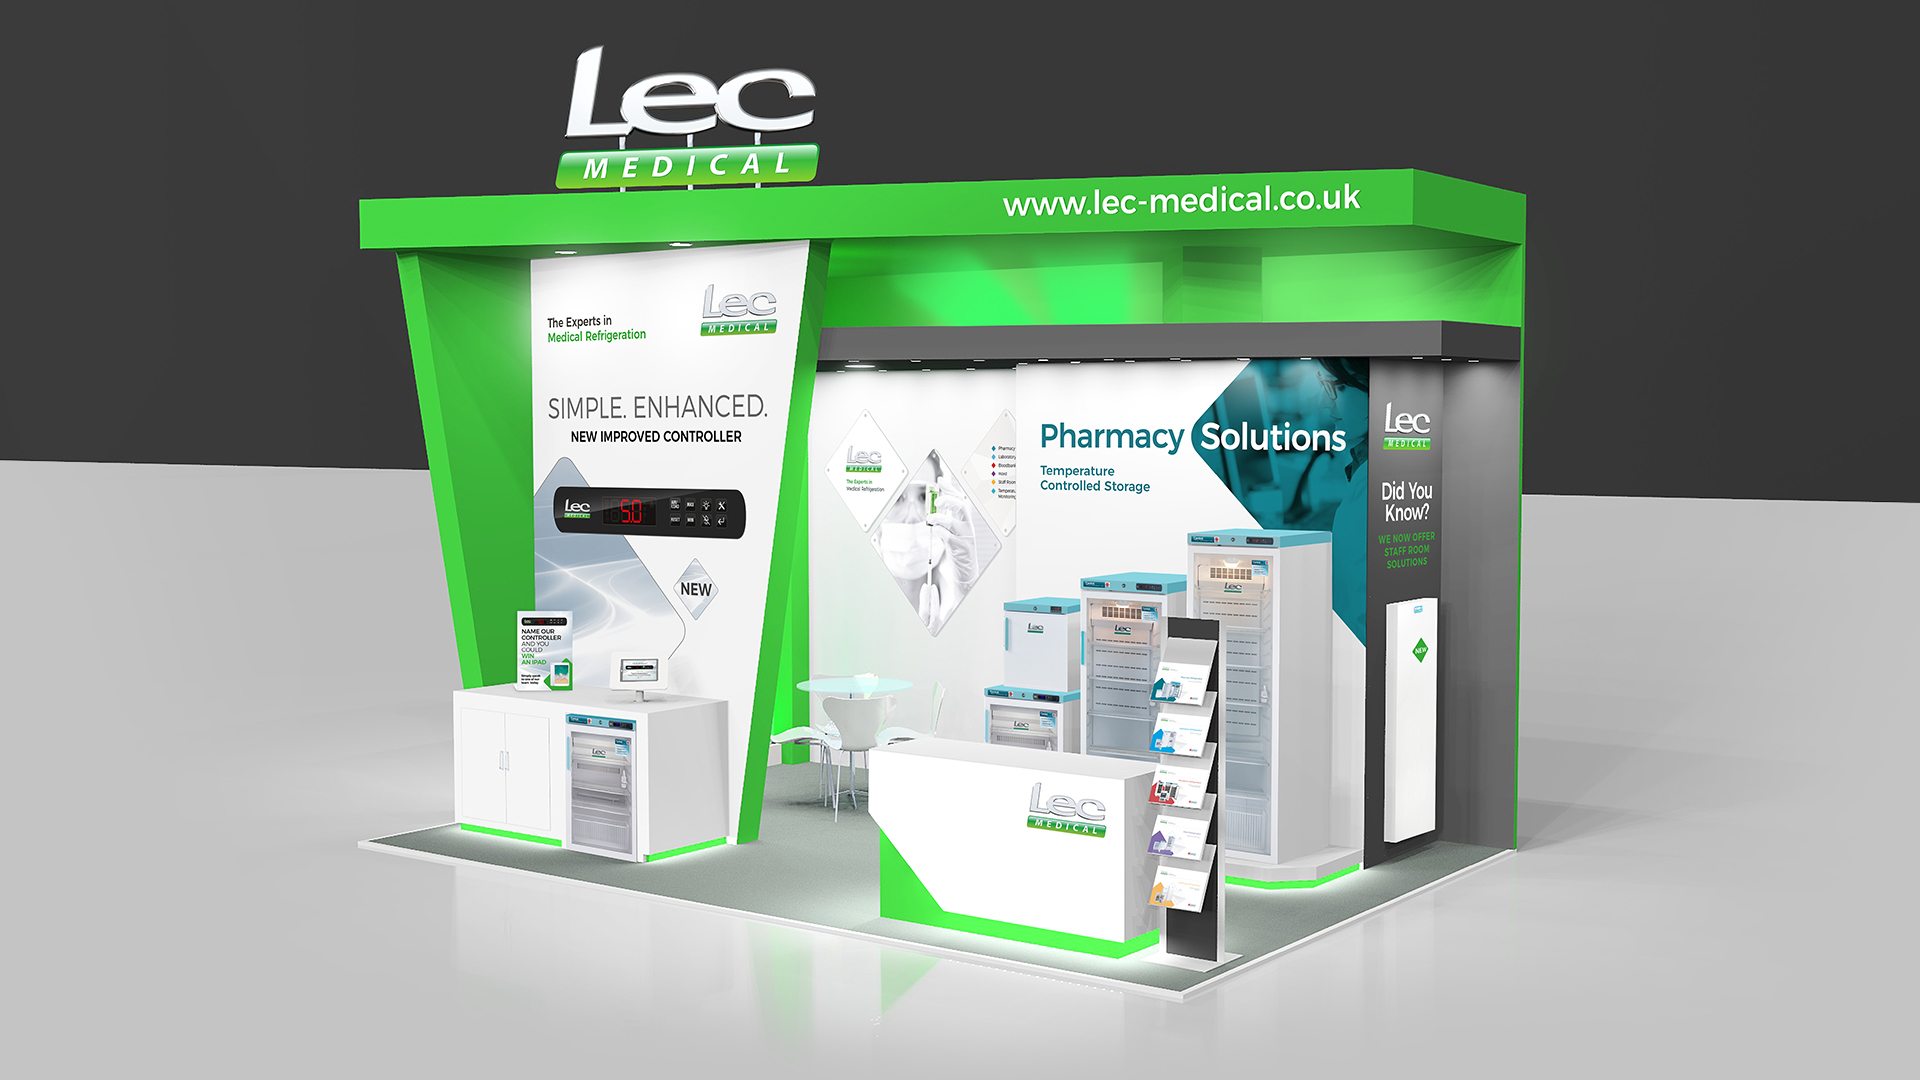 Simple Exhibition Stand Design : Partnership design exhibition stand design partnership design